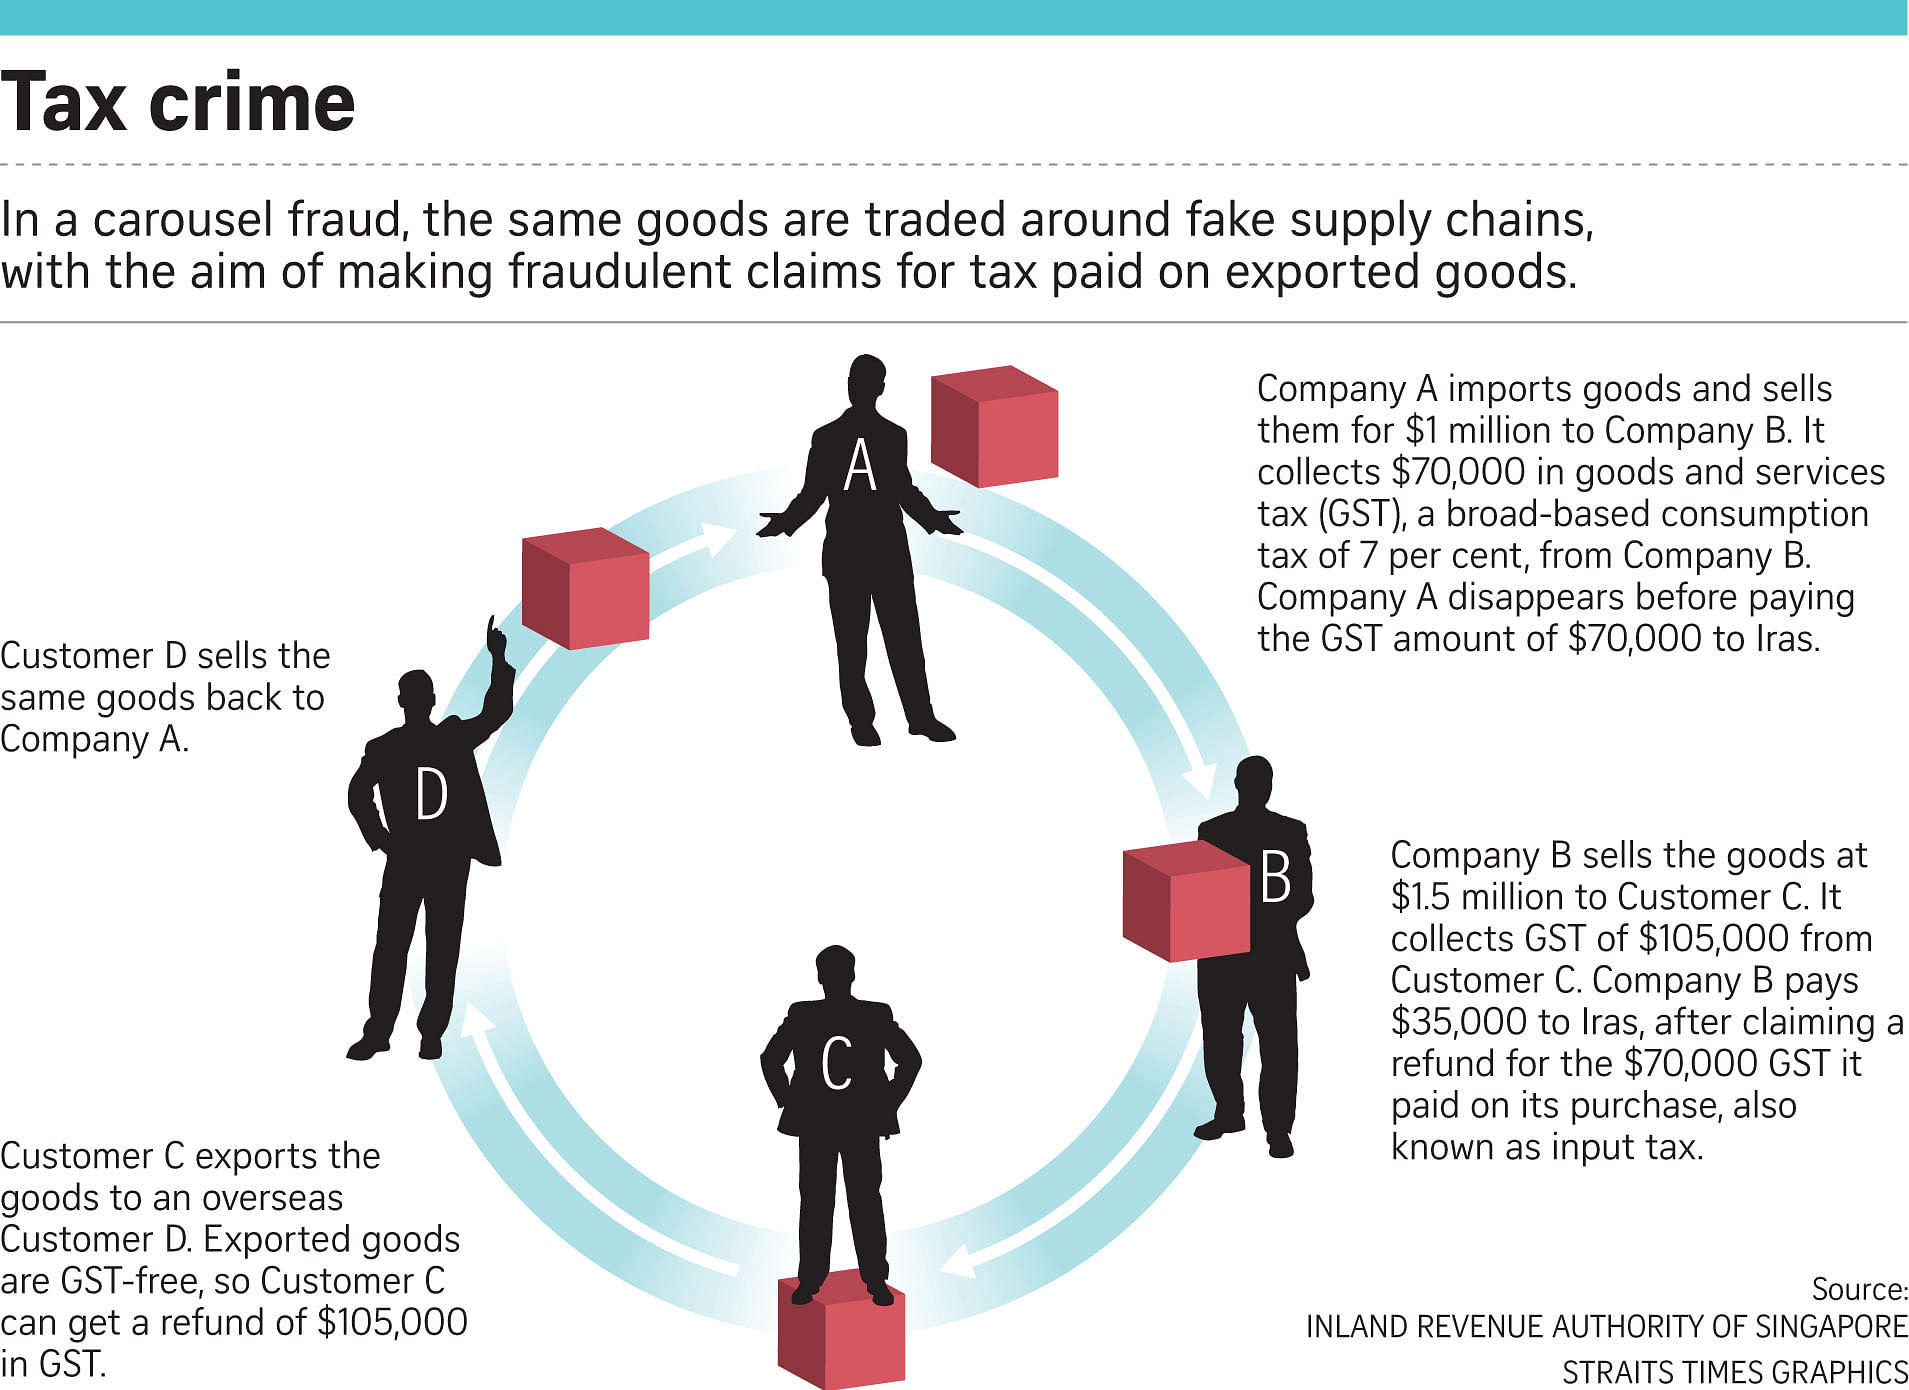 43 being probed for suspected GST fraud, Courts & Crime News & Top